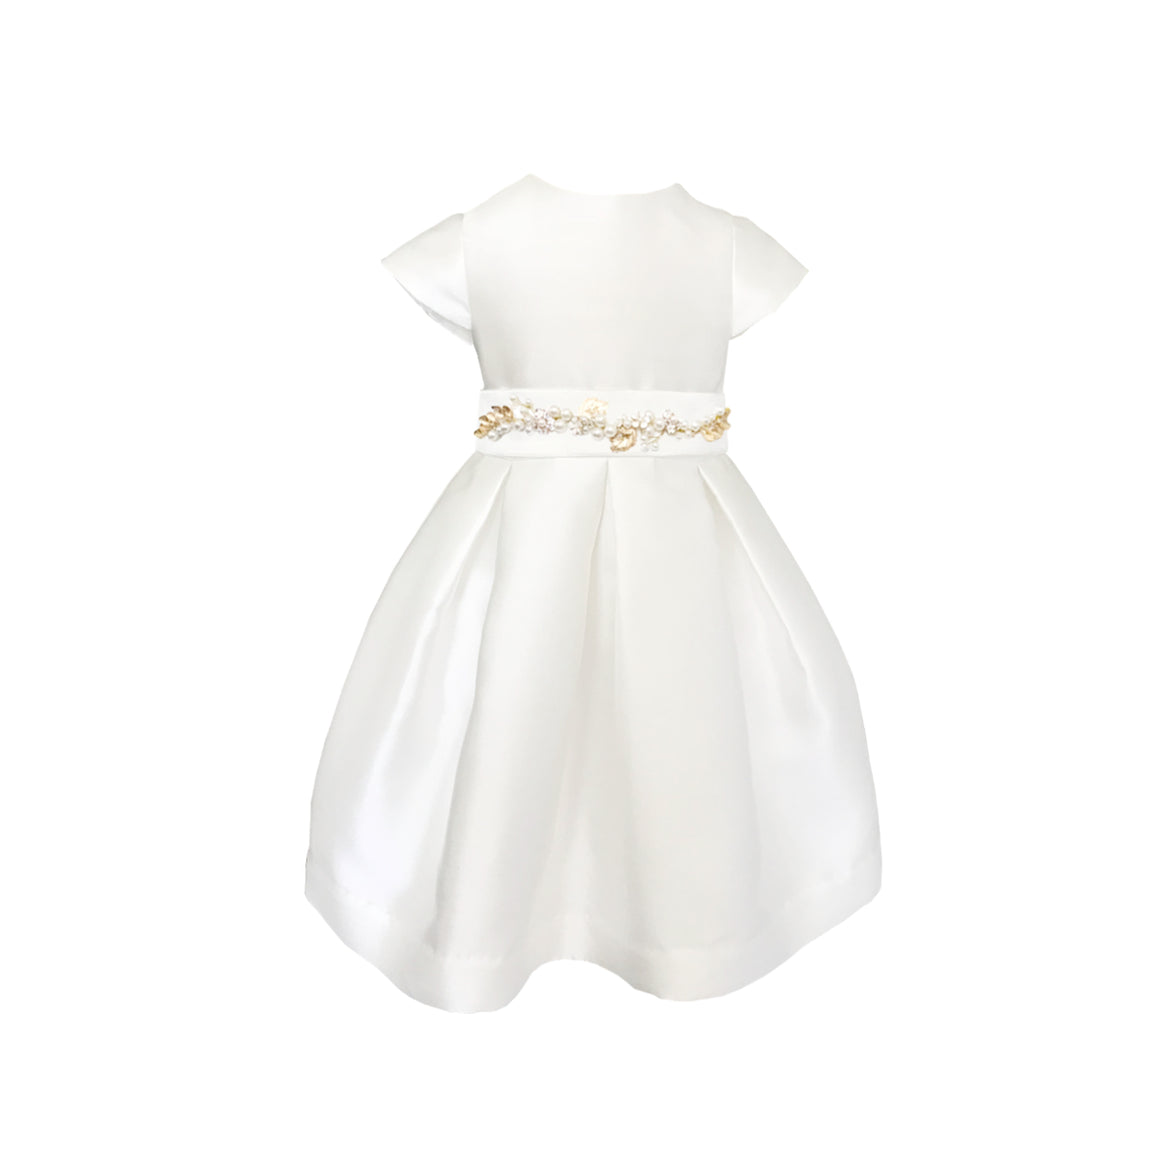 Fondant Dress | Gold Floral Belt